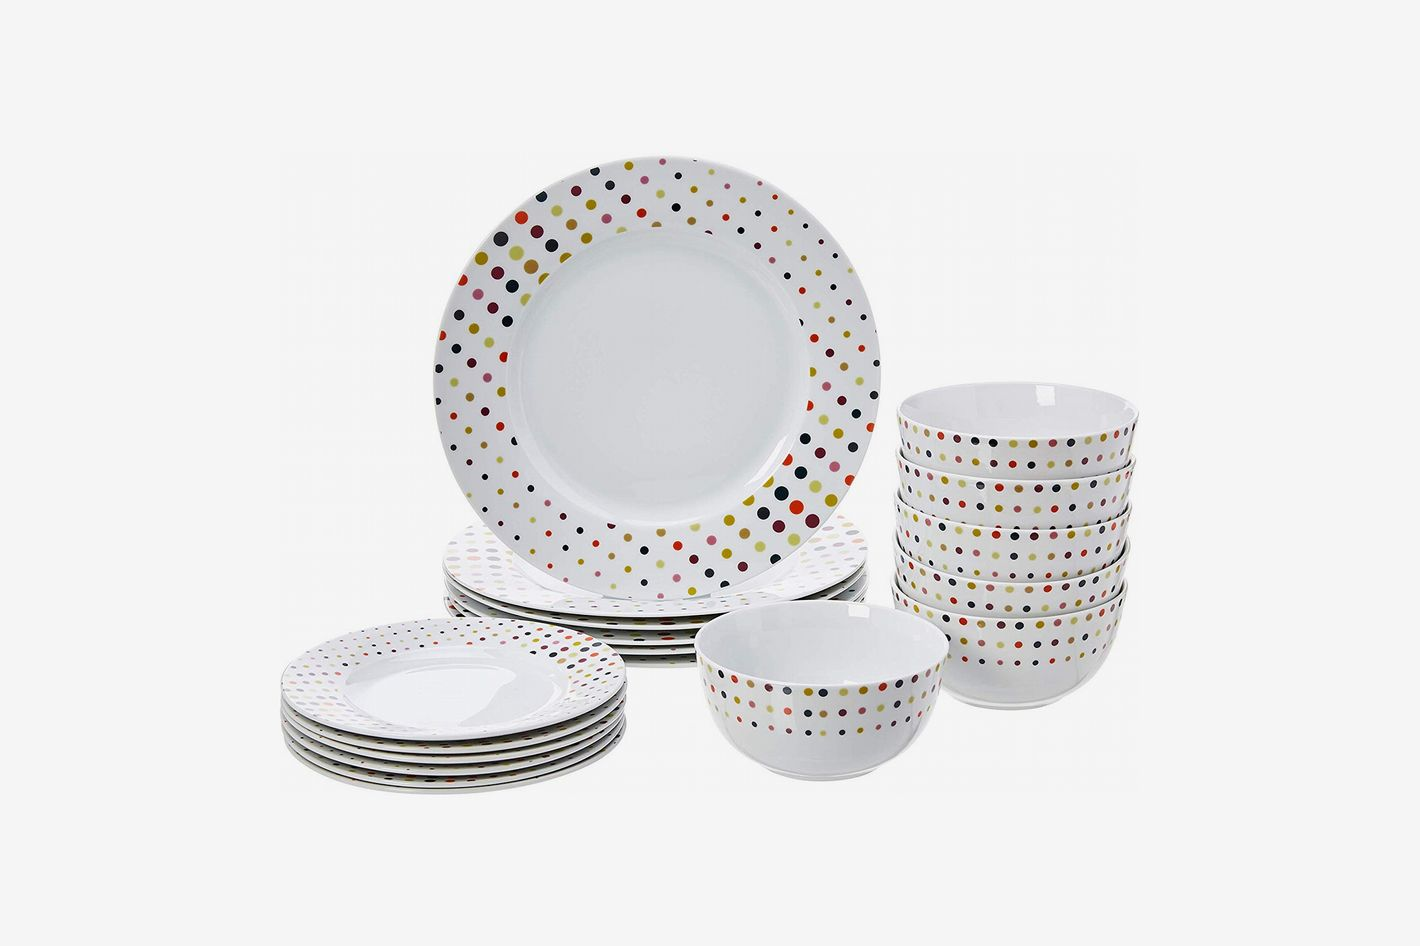 AmazonBasics 18-Piece Dinnerware Set – Dots, Service for 6